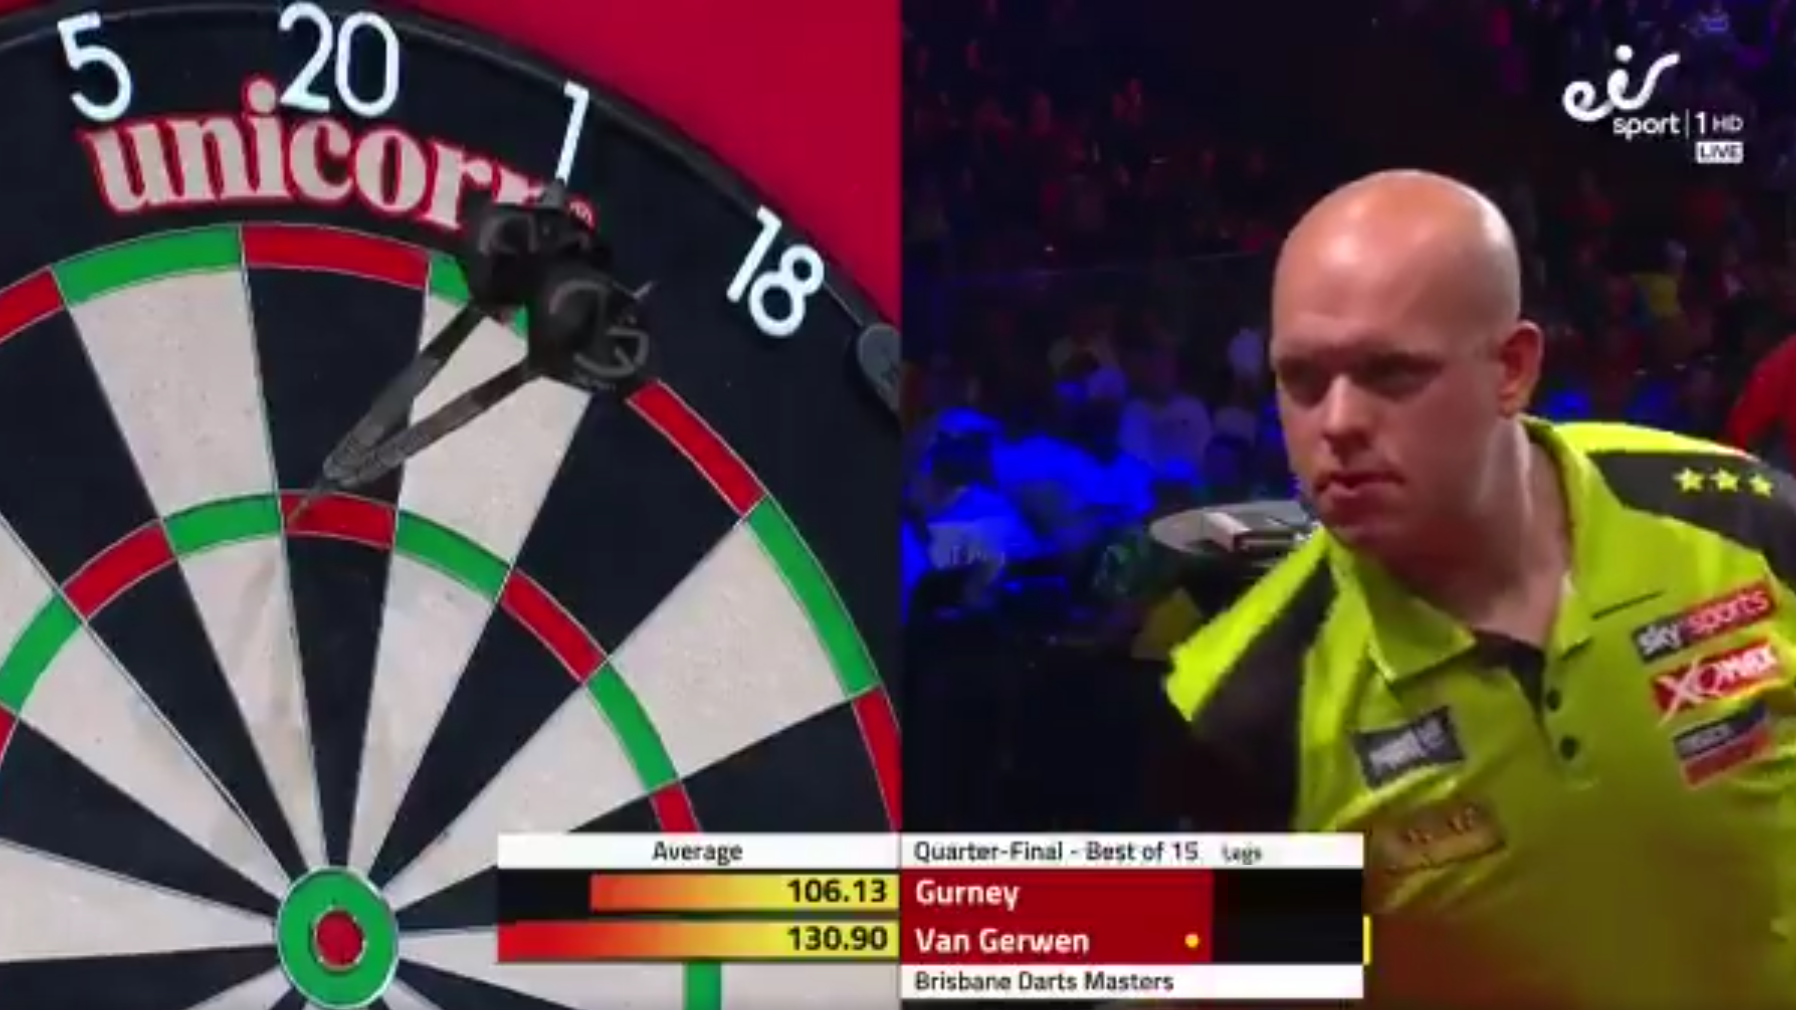 Watch Last Darts Van Gerwen v Gurney In Quarter Final Brisbane Masters